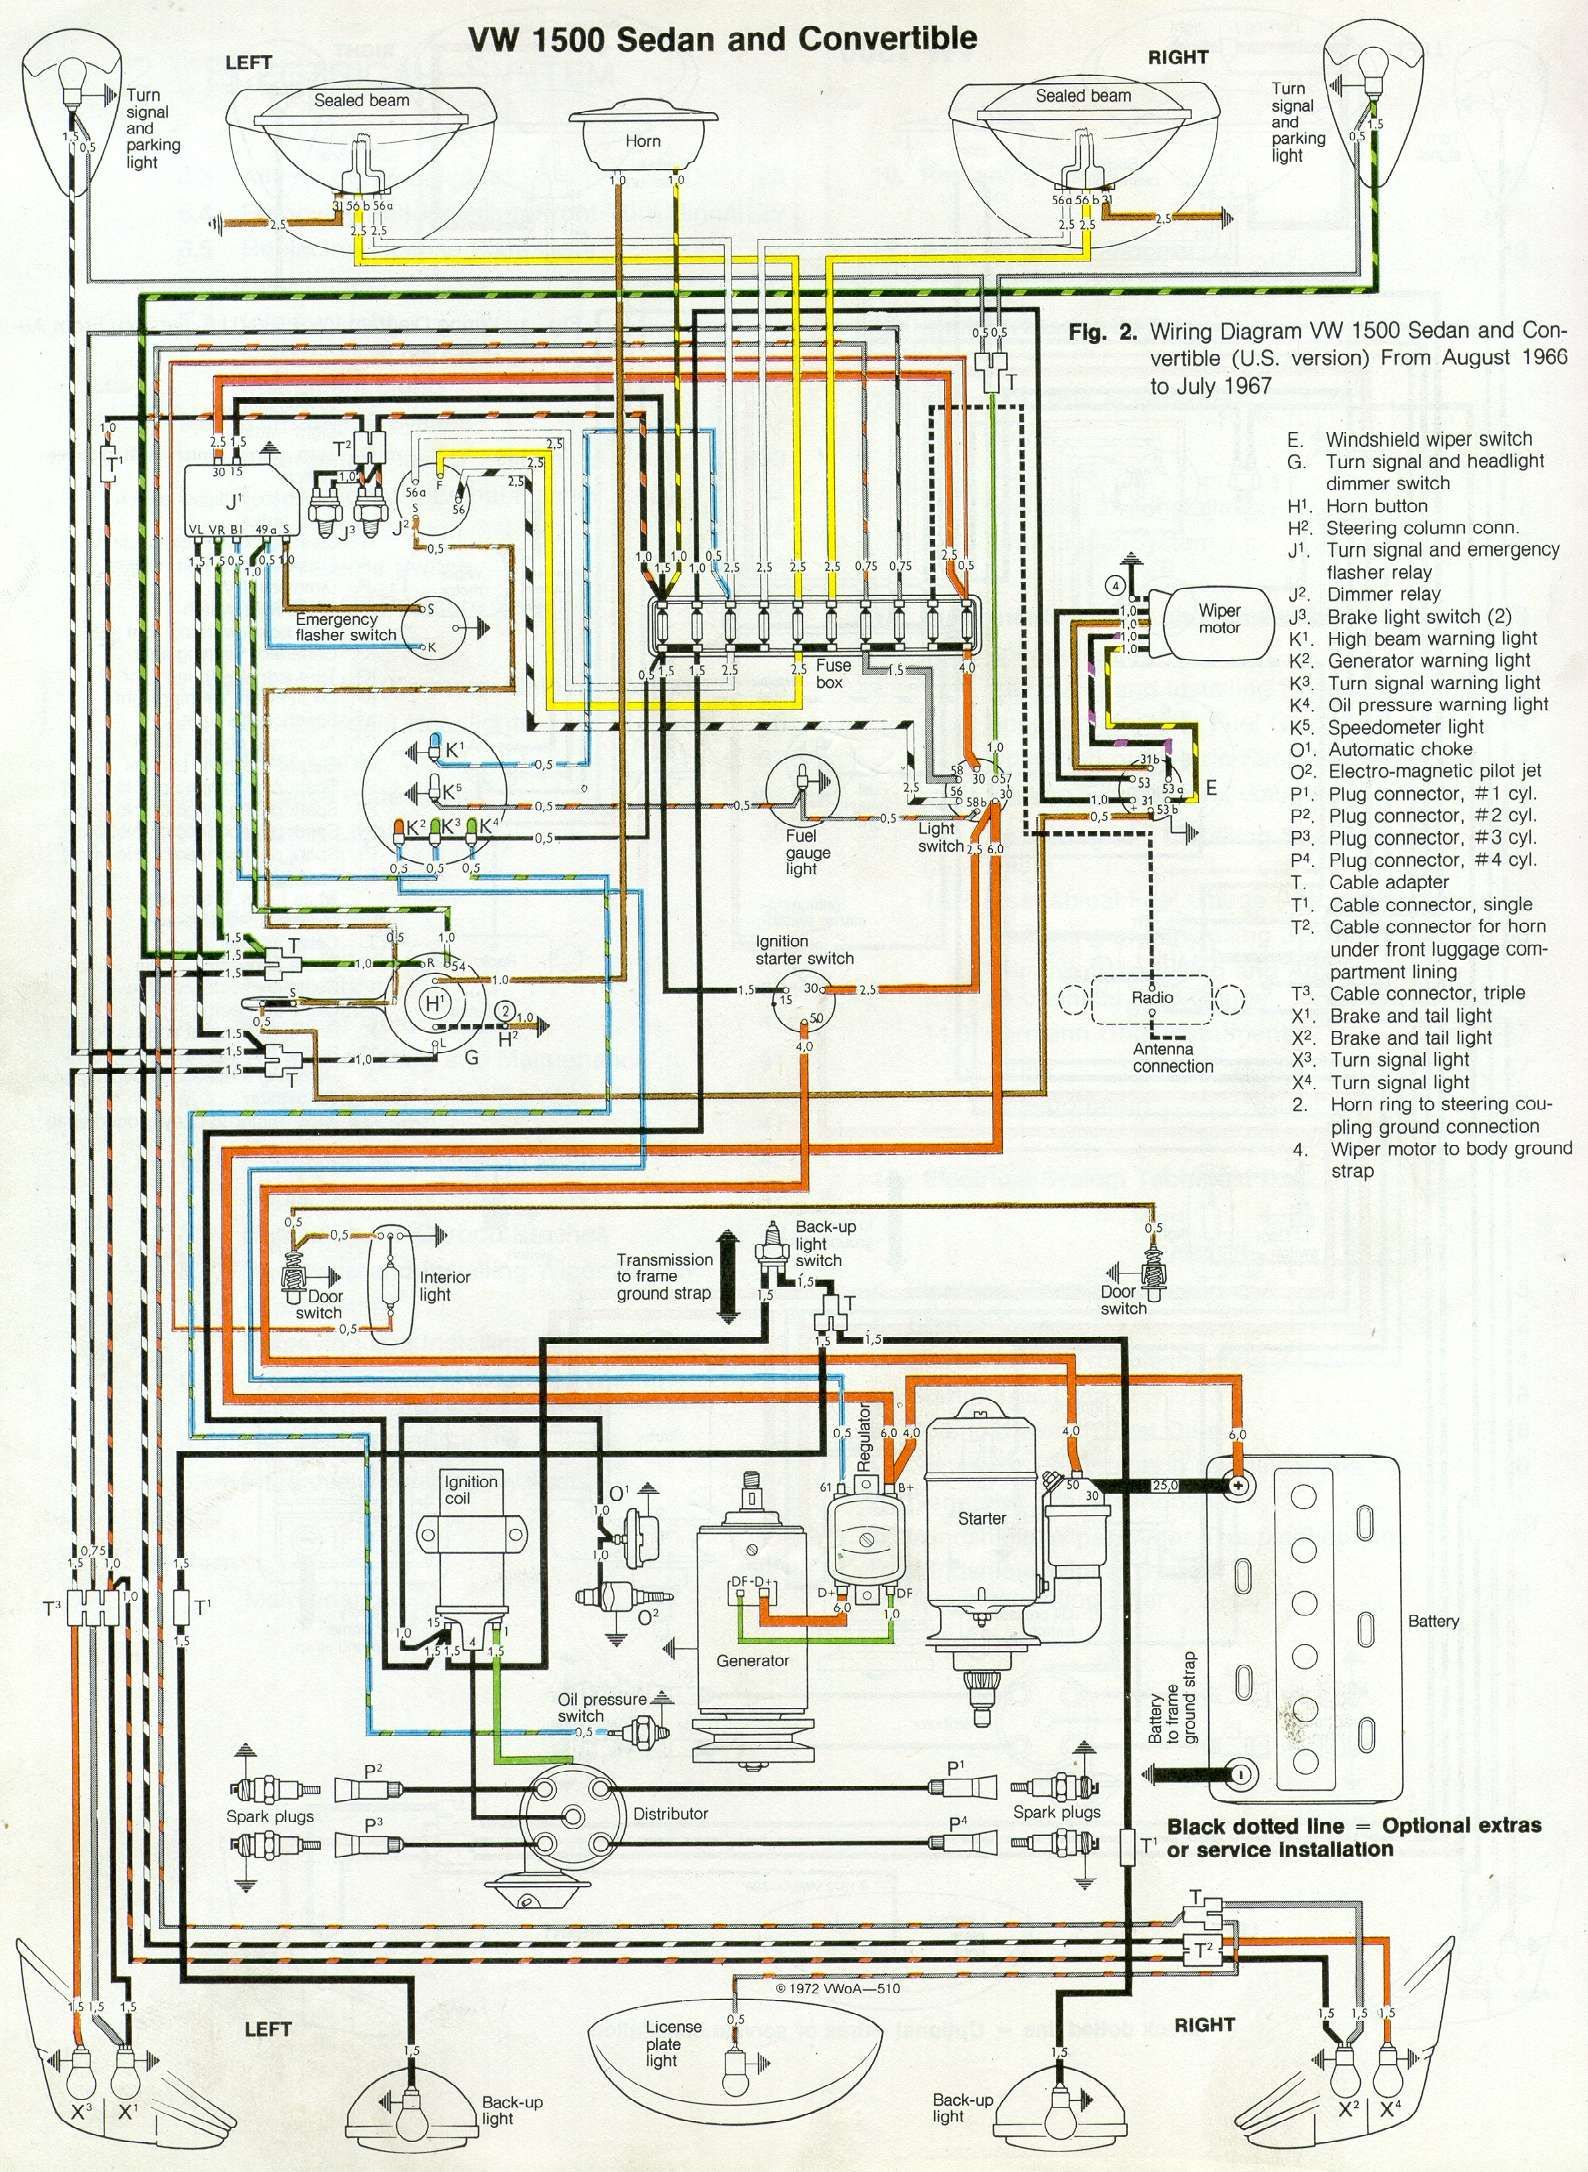 wiring diagrams free bugs 68 downloads vw beetle automotive wiring 1968 vw wiring schematic wiring diagram [ 1588 x 2172 Pixel ]